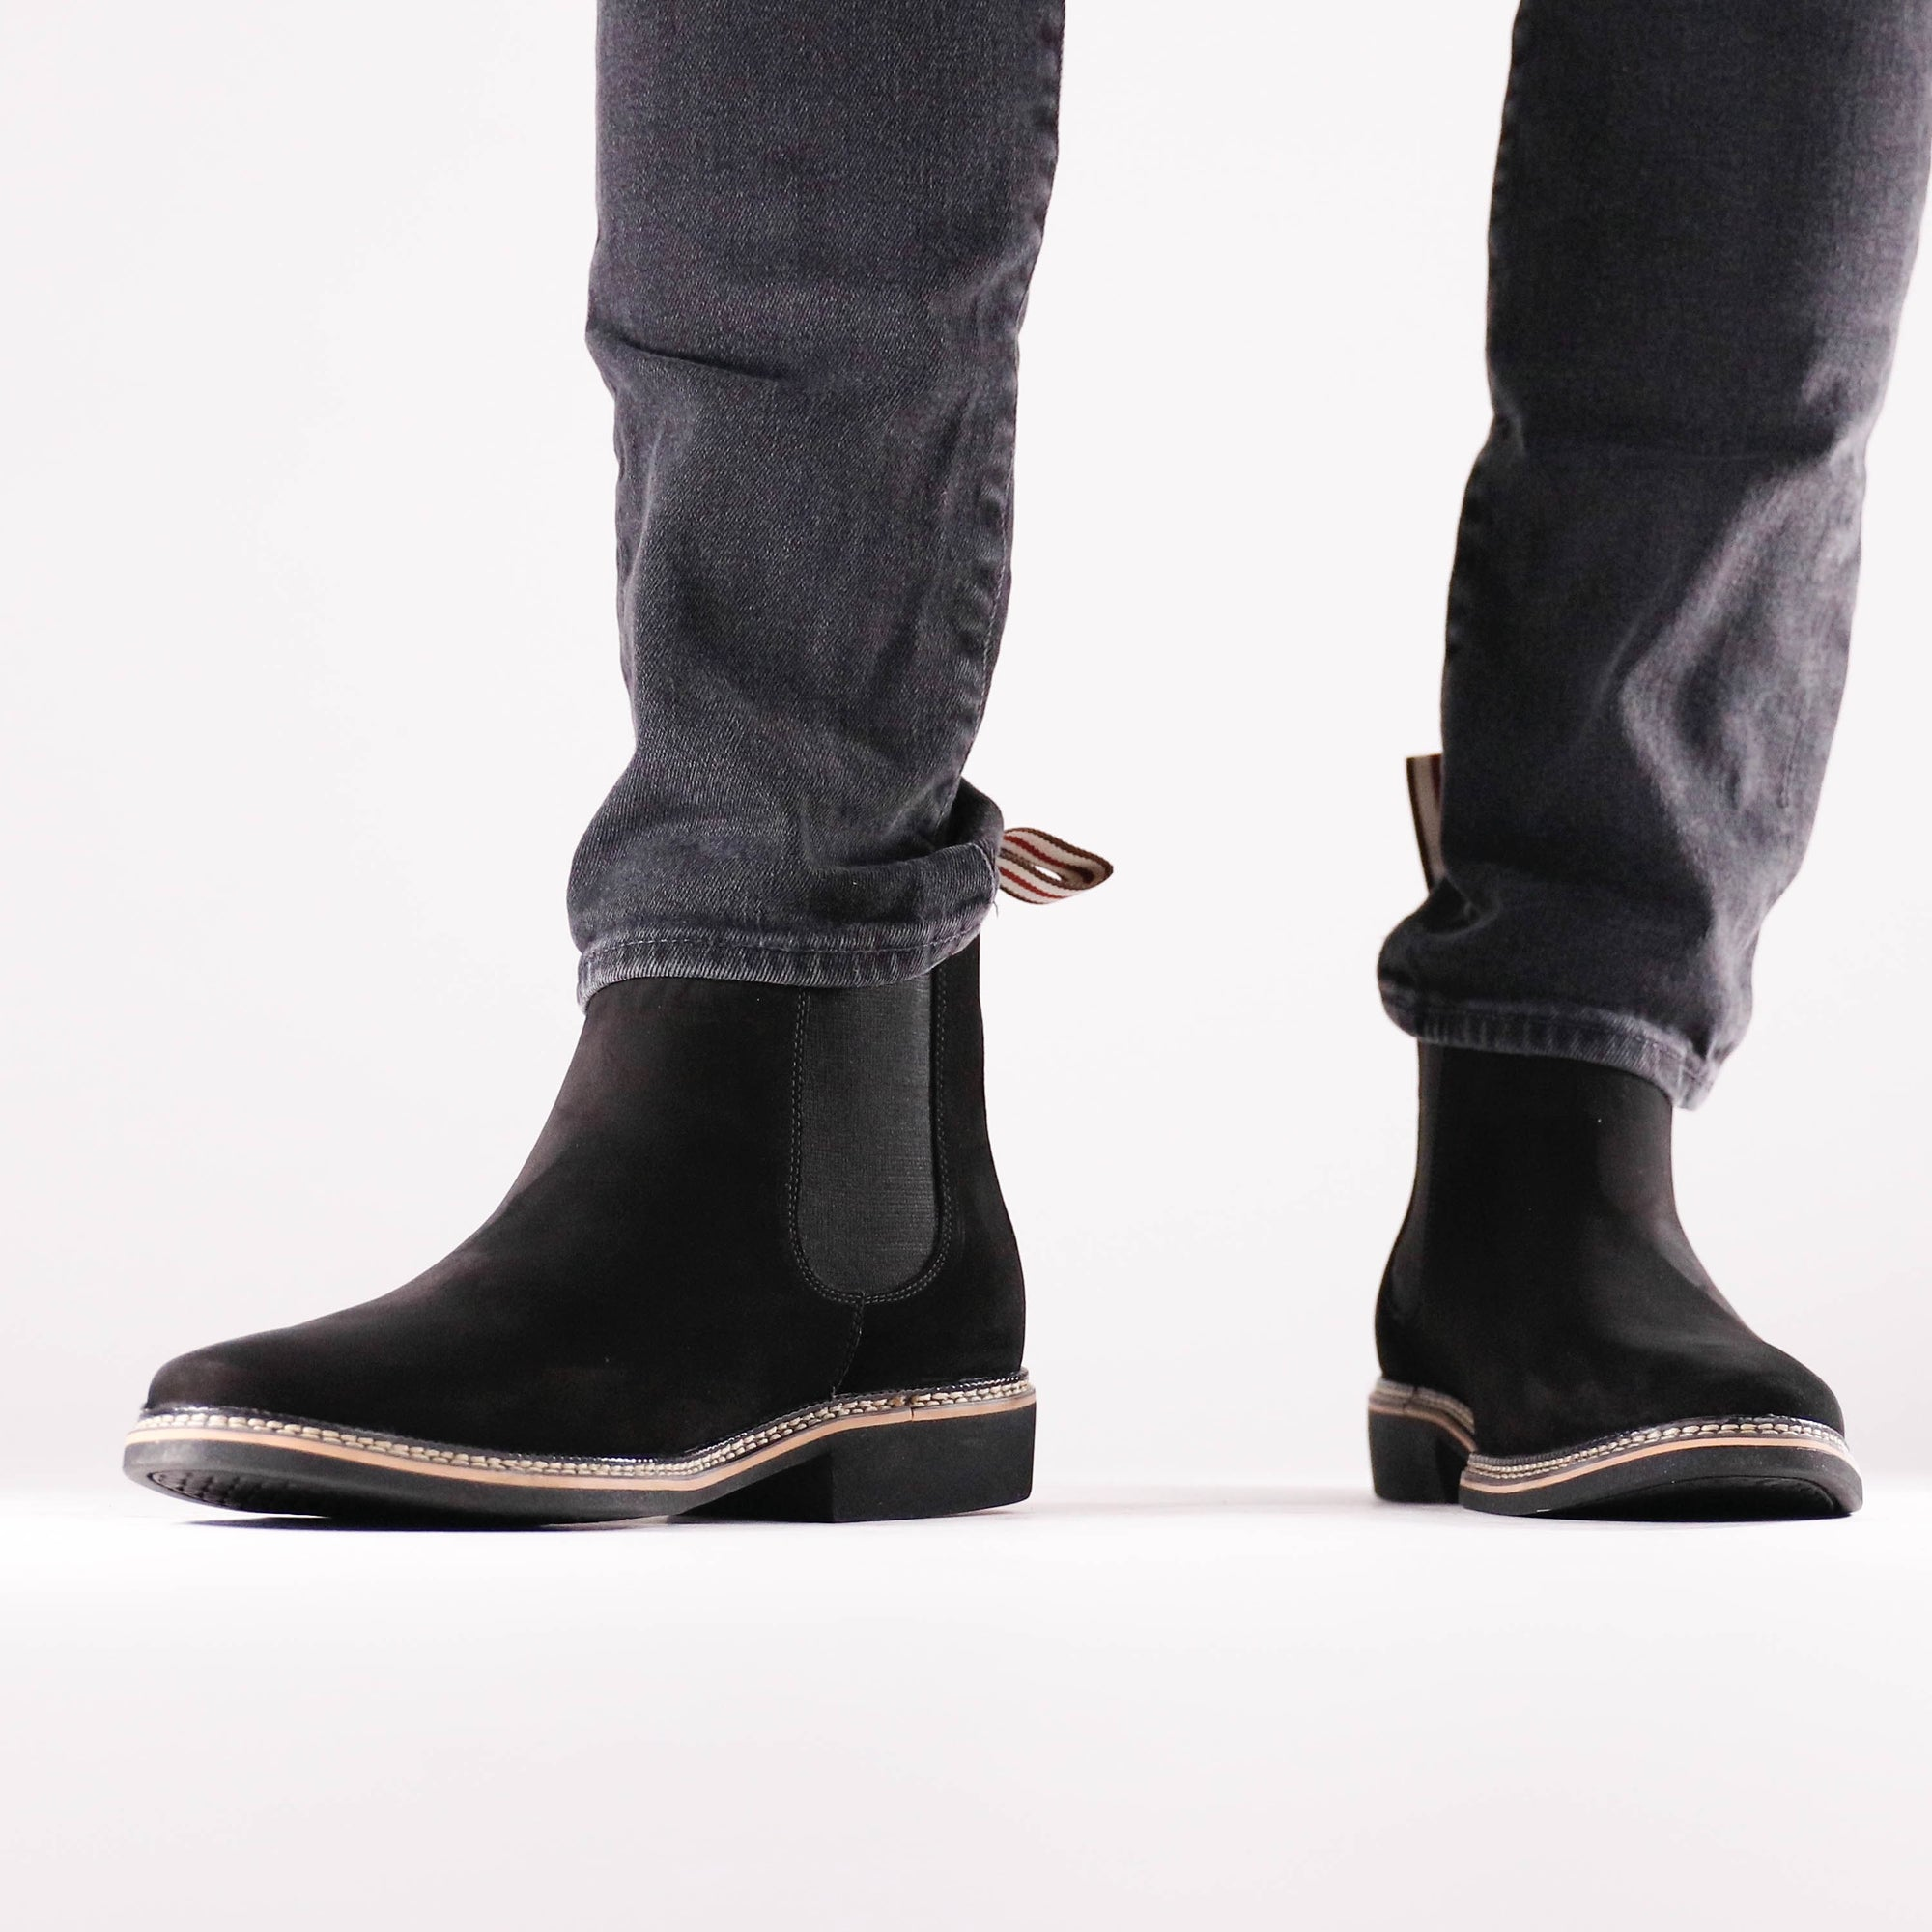 DW Chelsea Boots Men_Black 2_chelsea botos men, de wulf shoes, de wulf men shoes, chelsea boots leather, men chelsea boots leather, black leather boots for men